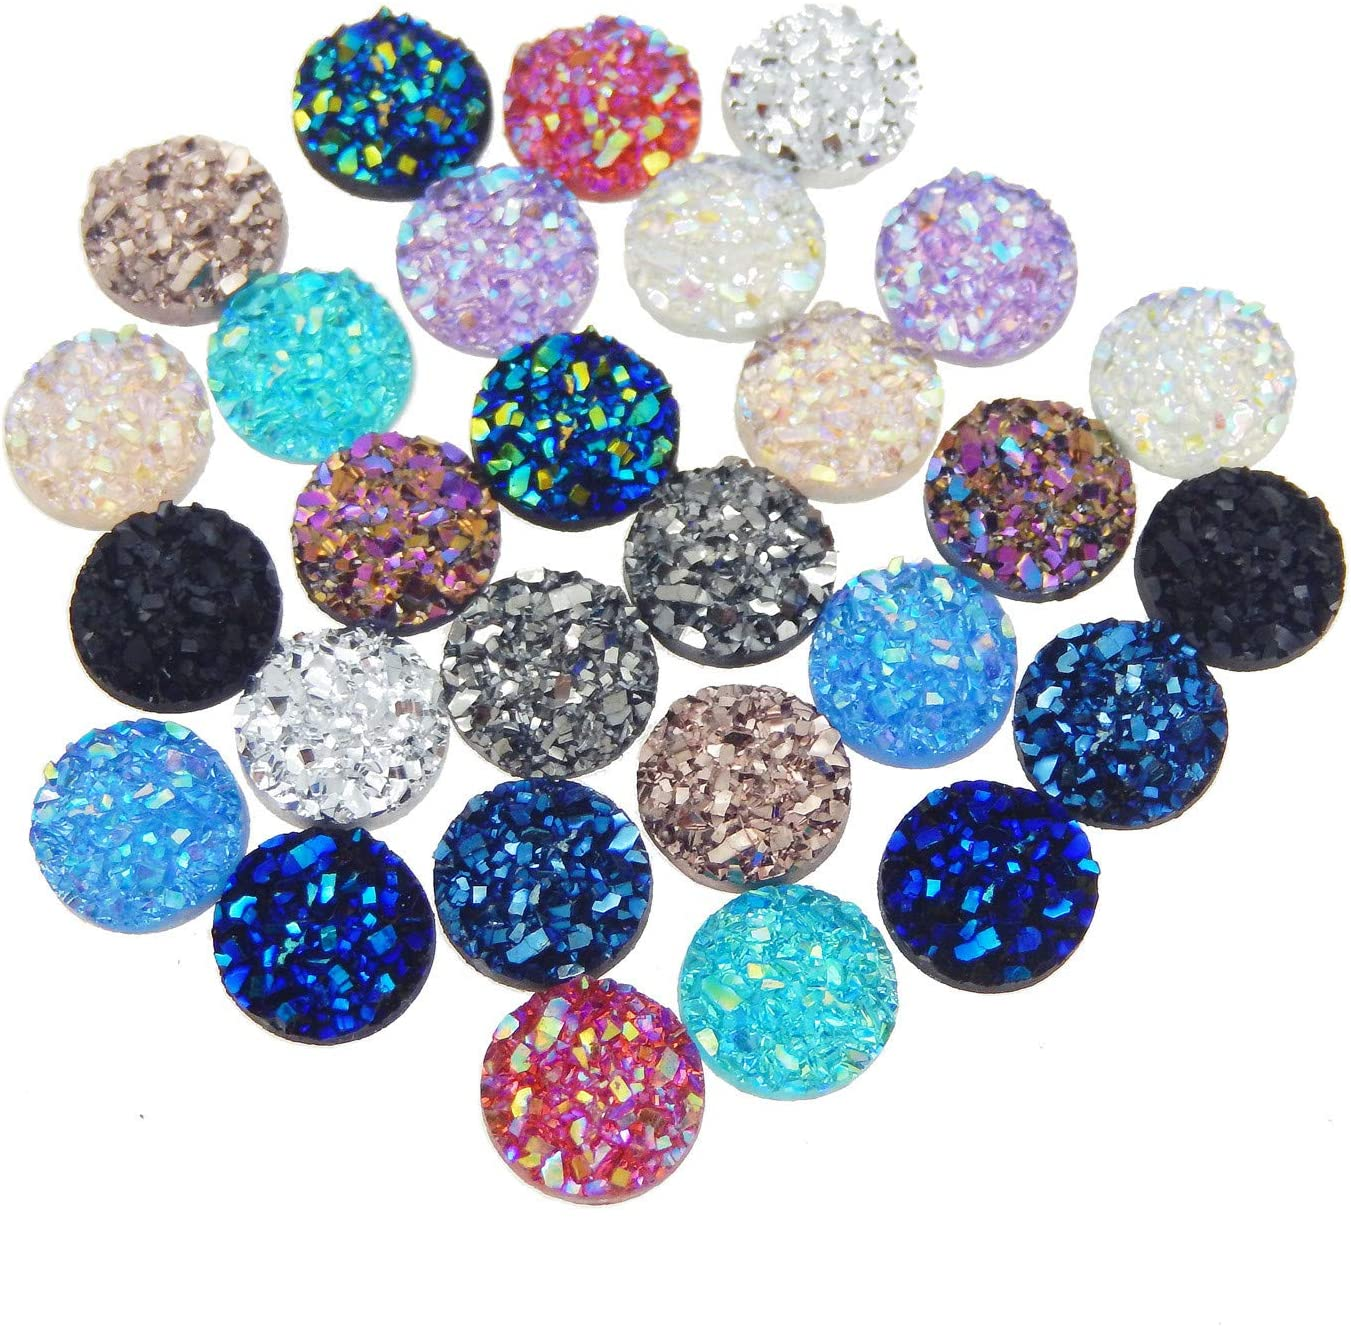 8mm Alysee 200 Pieces Multi-color Round Resin Cabochon Flatback Druzy Iridescent Colorful Cabochons DIY Accessories